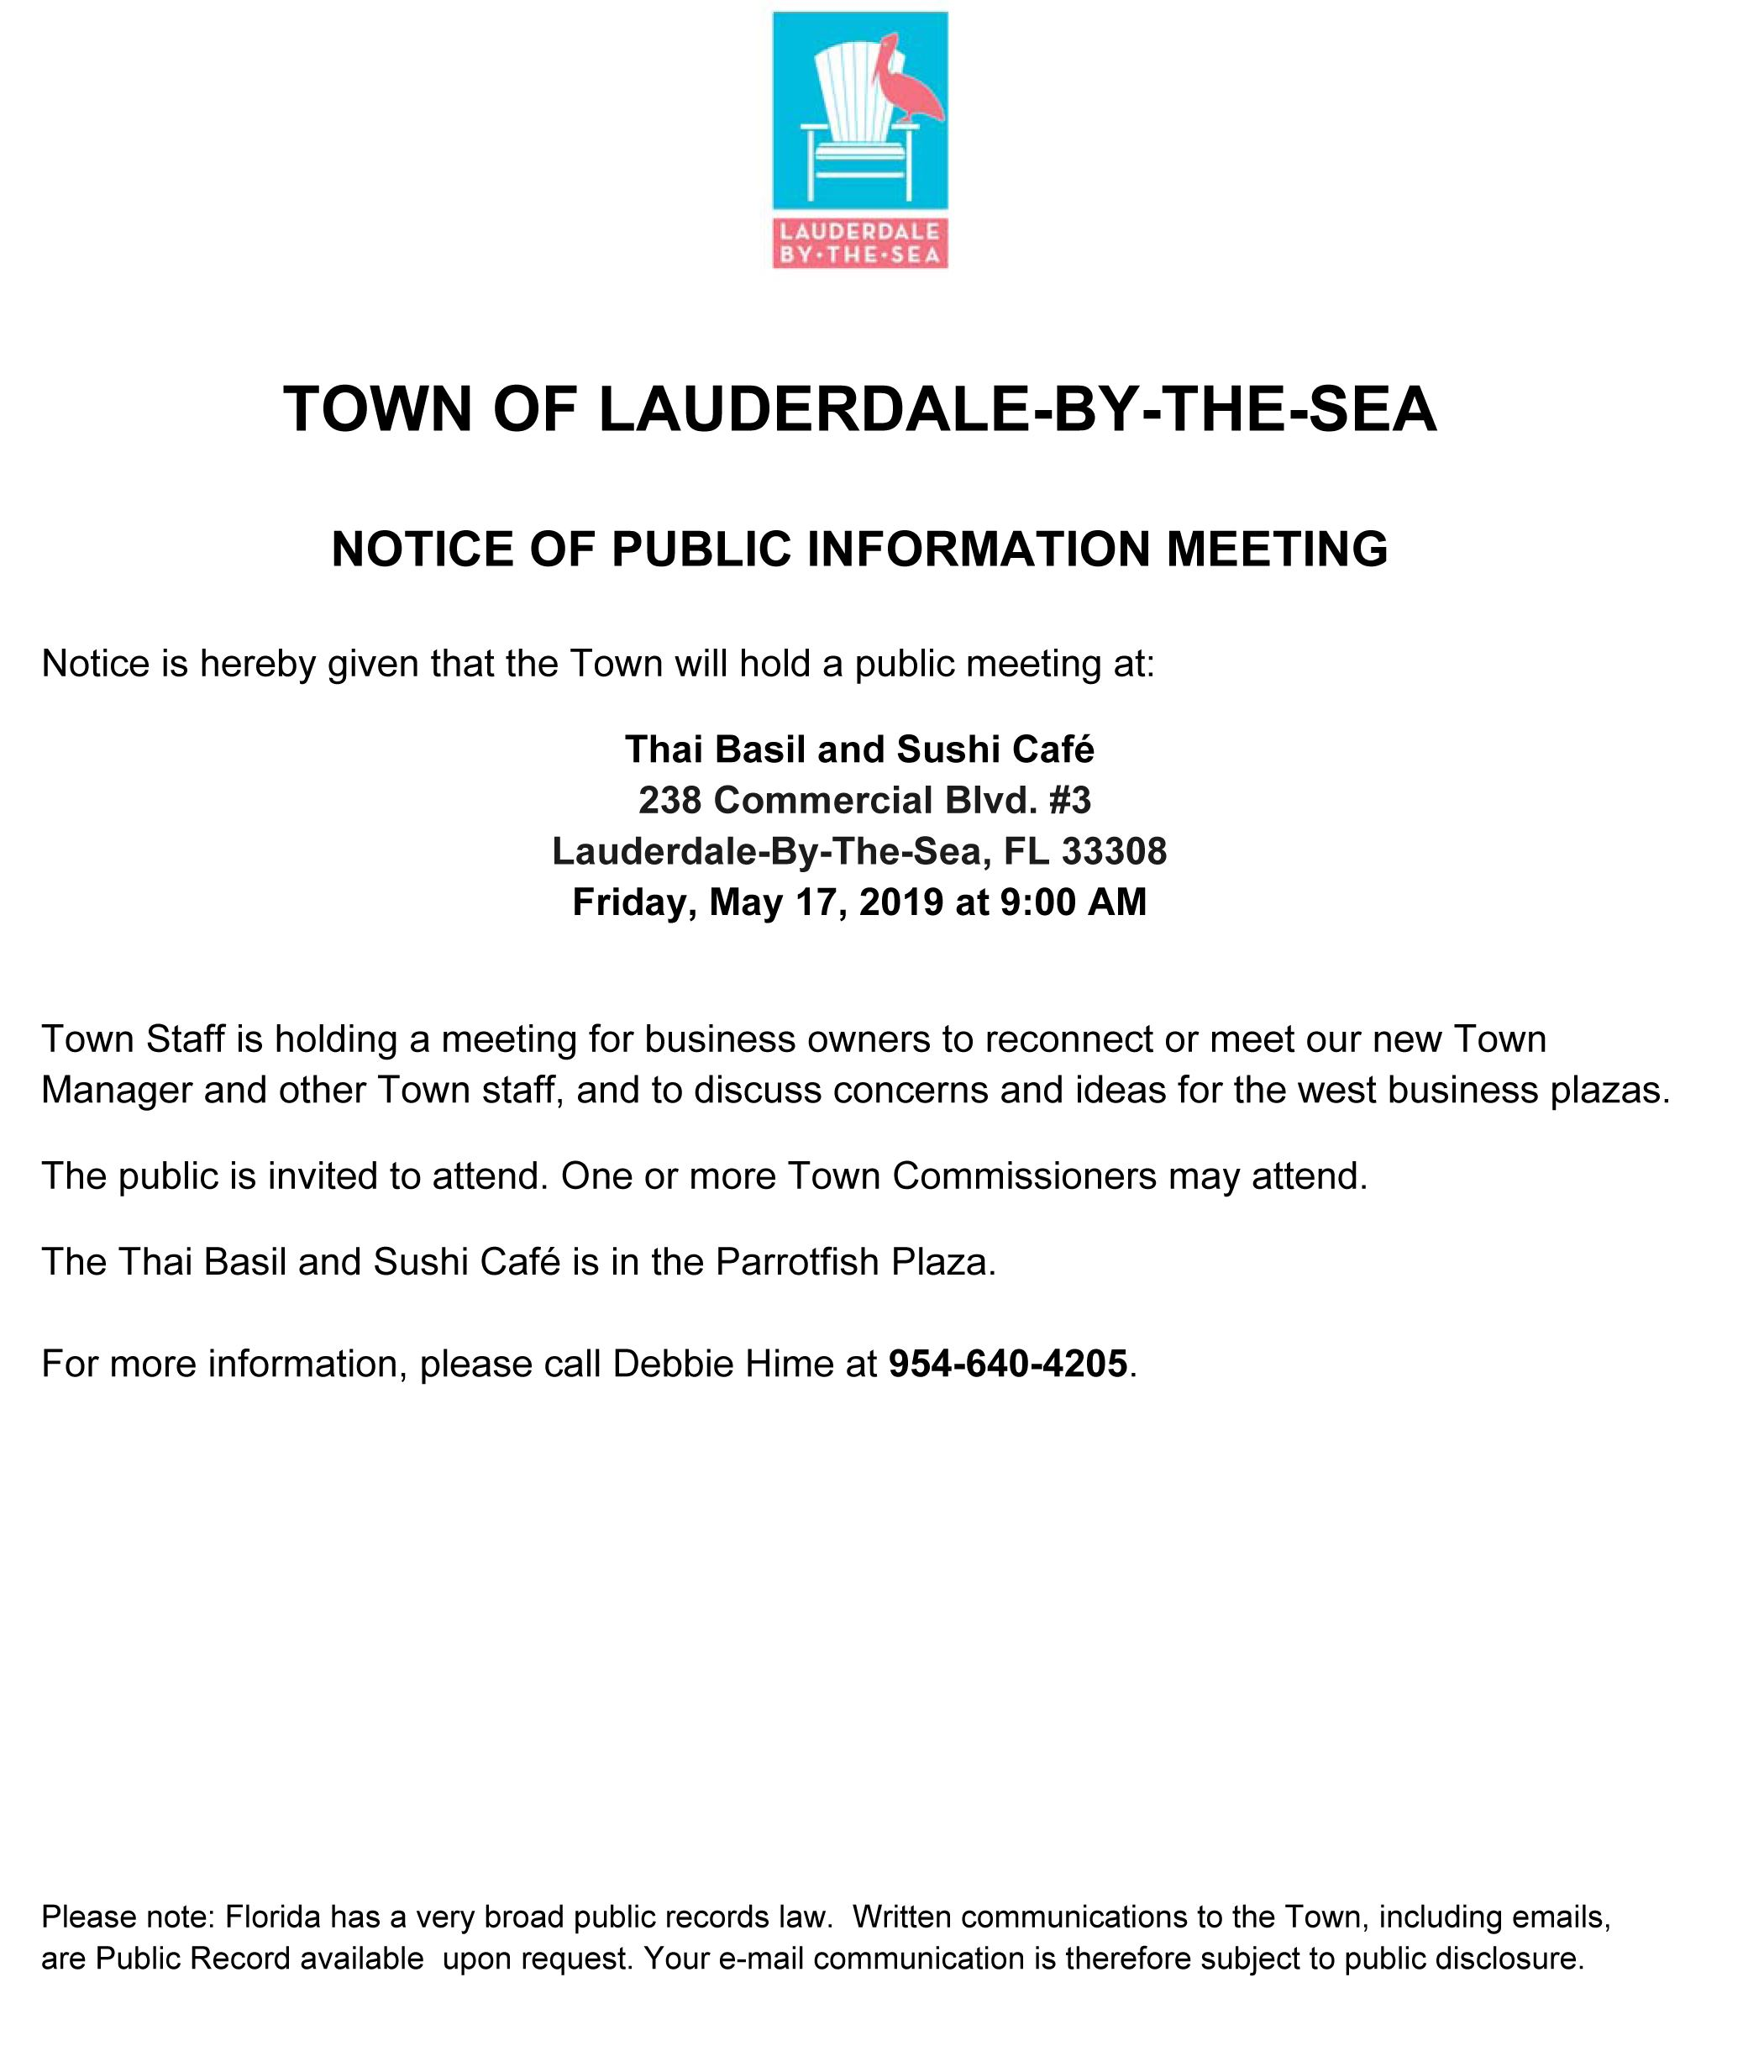 West Business Plaza Public Meeting